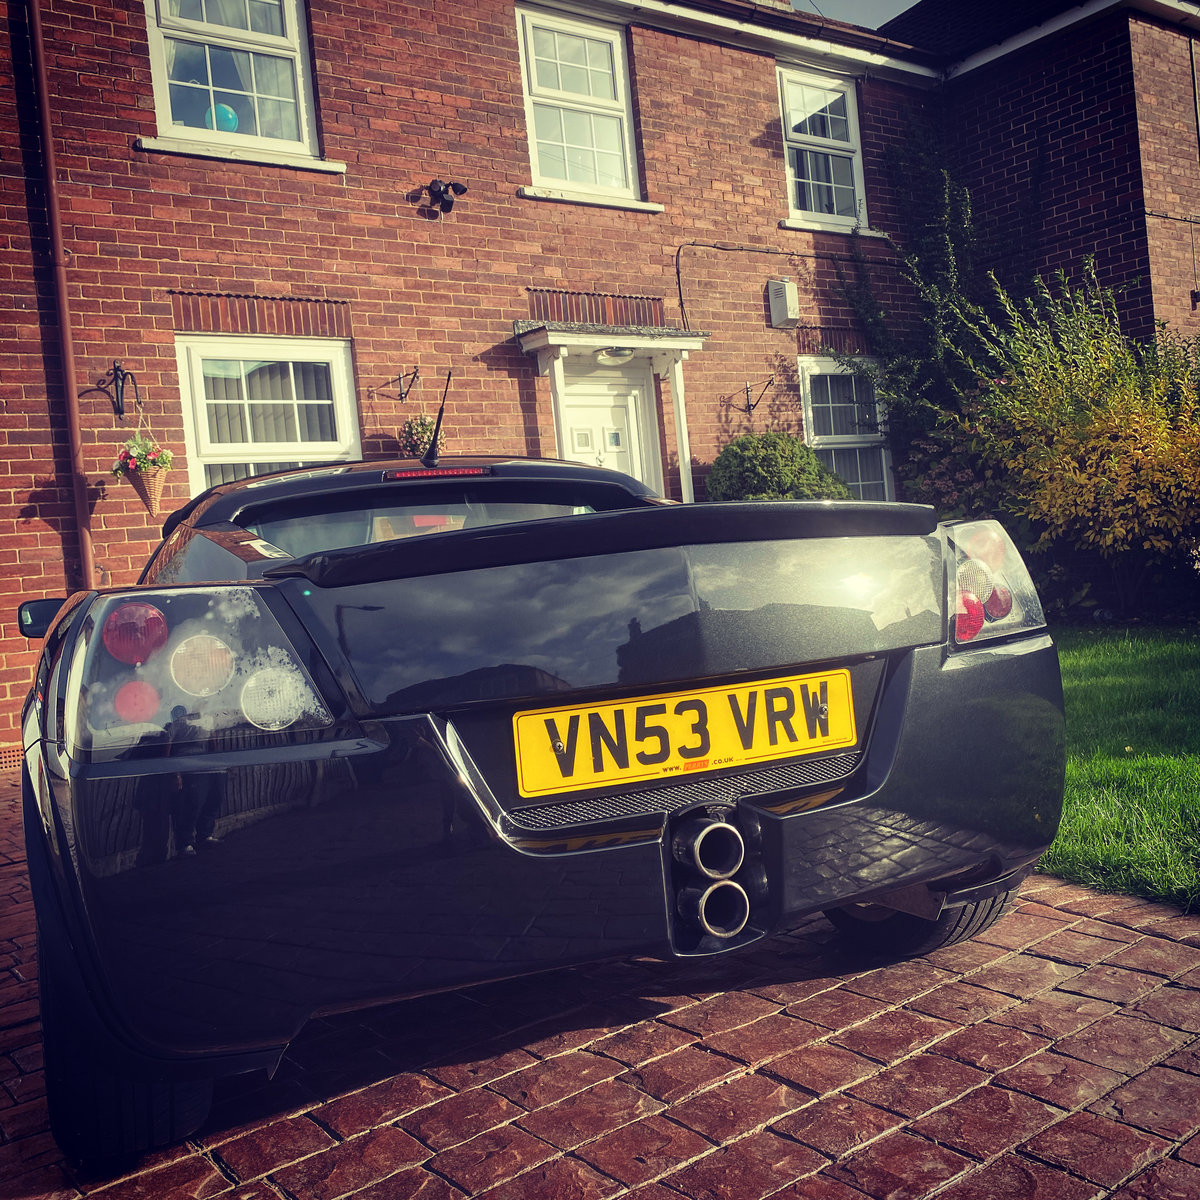 2003 Pristine Vauxhall VX220 turbo For Sale (picture 1 of 5)